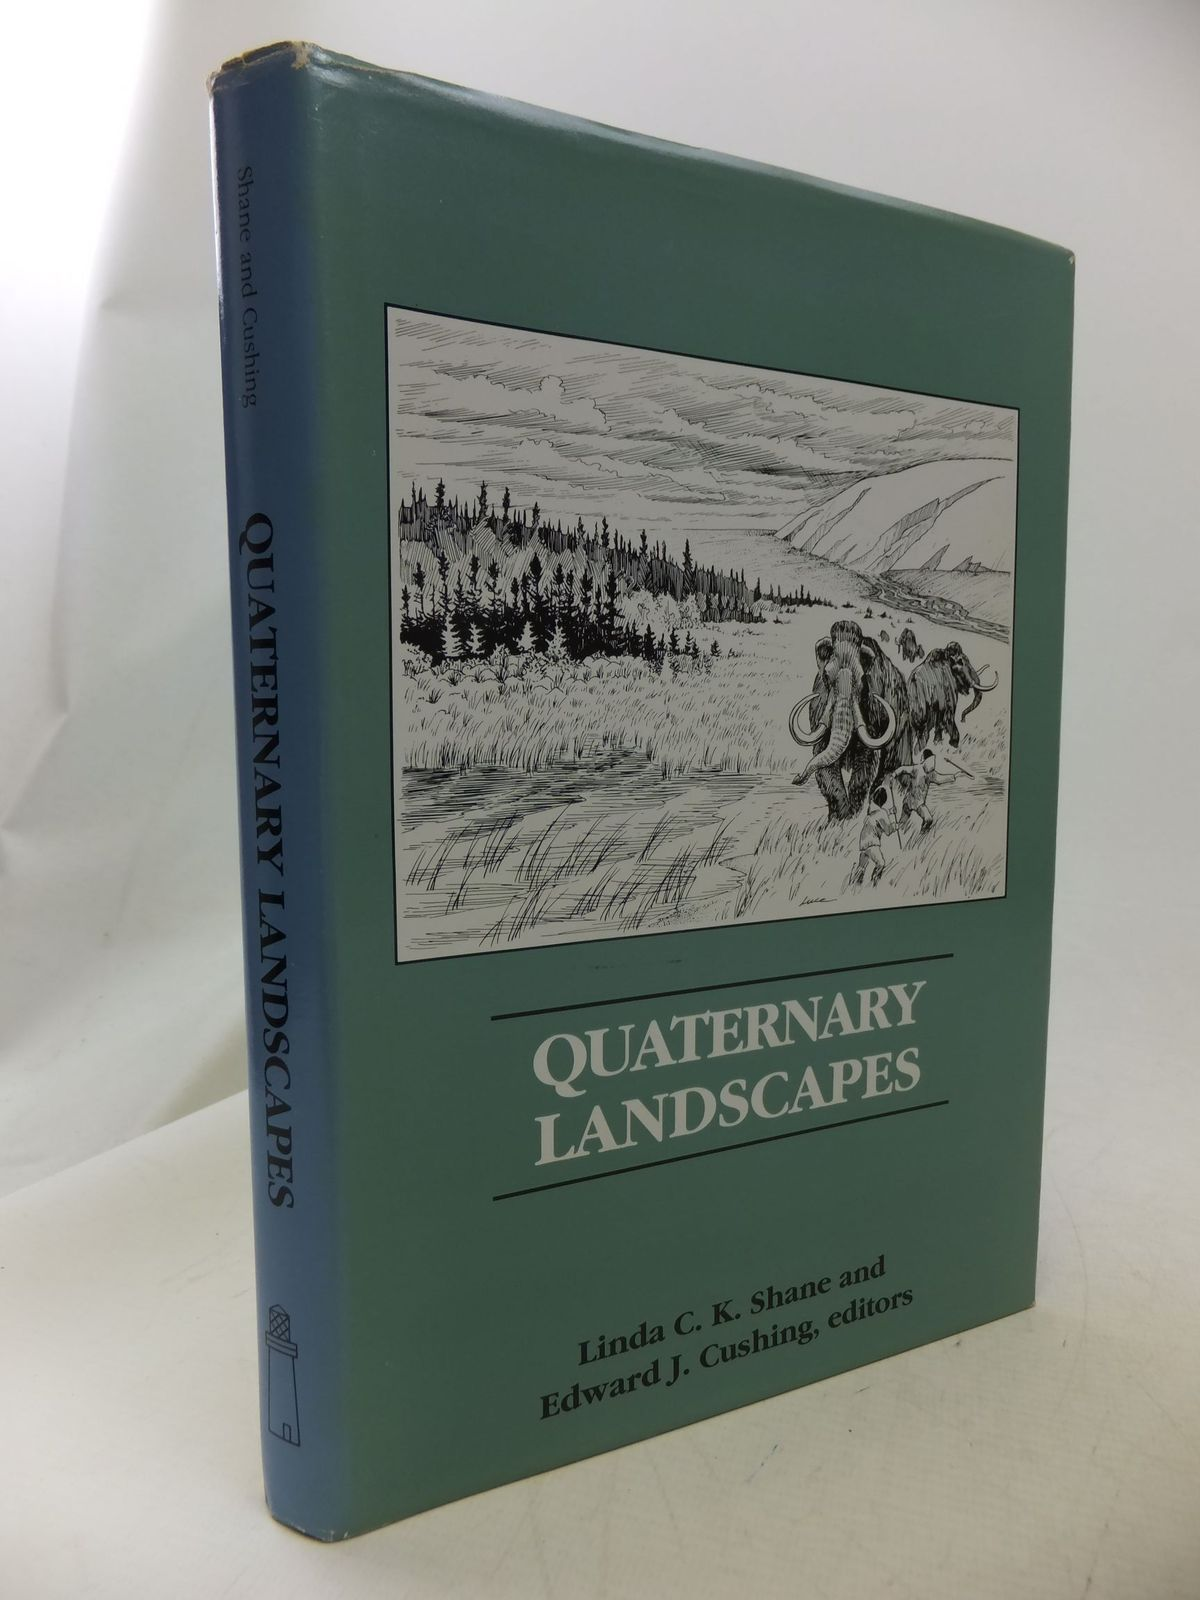 Photo of QUATERNARY LANDSCAPES written by Shane, Linda C.K. Cushing, Edward J. published by Belhaven Press (STOCK CODE: 1710855)  for sale by Stella & Rose's Books